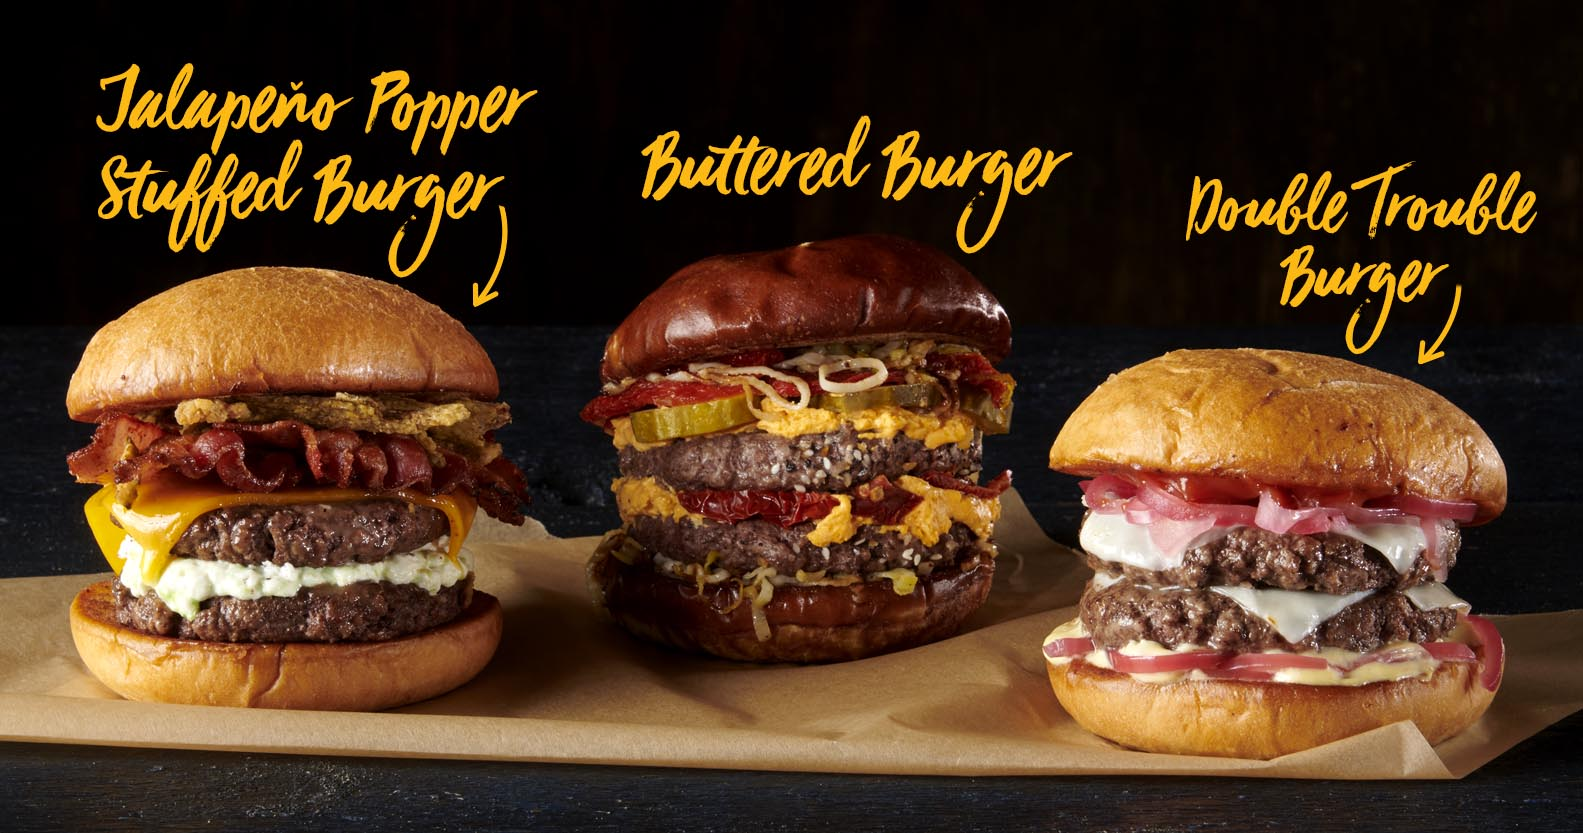 Jalapeno popper stuffed burger, buttered burger, double trouble burger